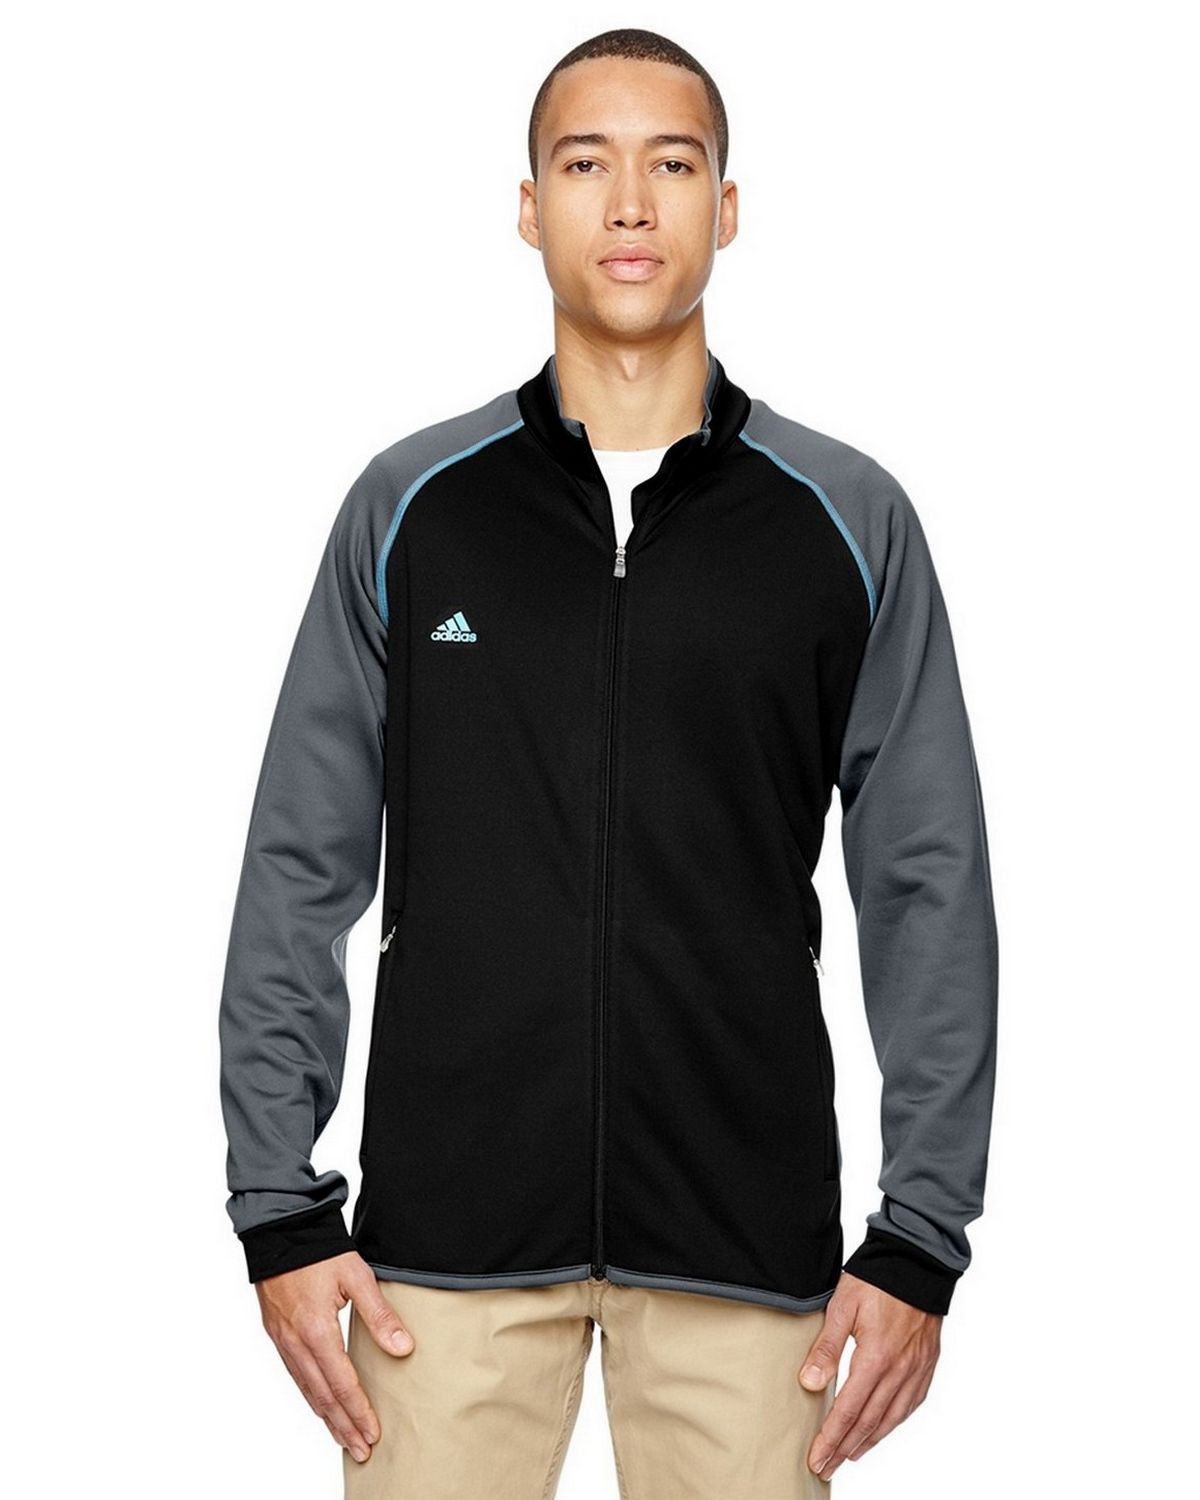 Adidas Golf A200 Men's climawarm Plus Jacket